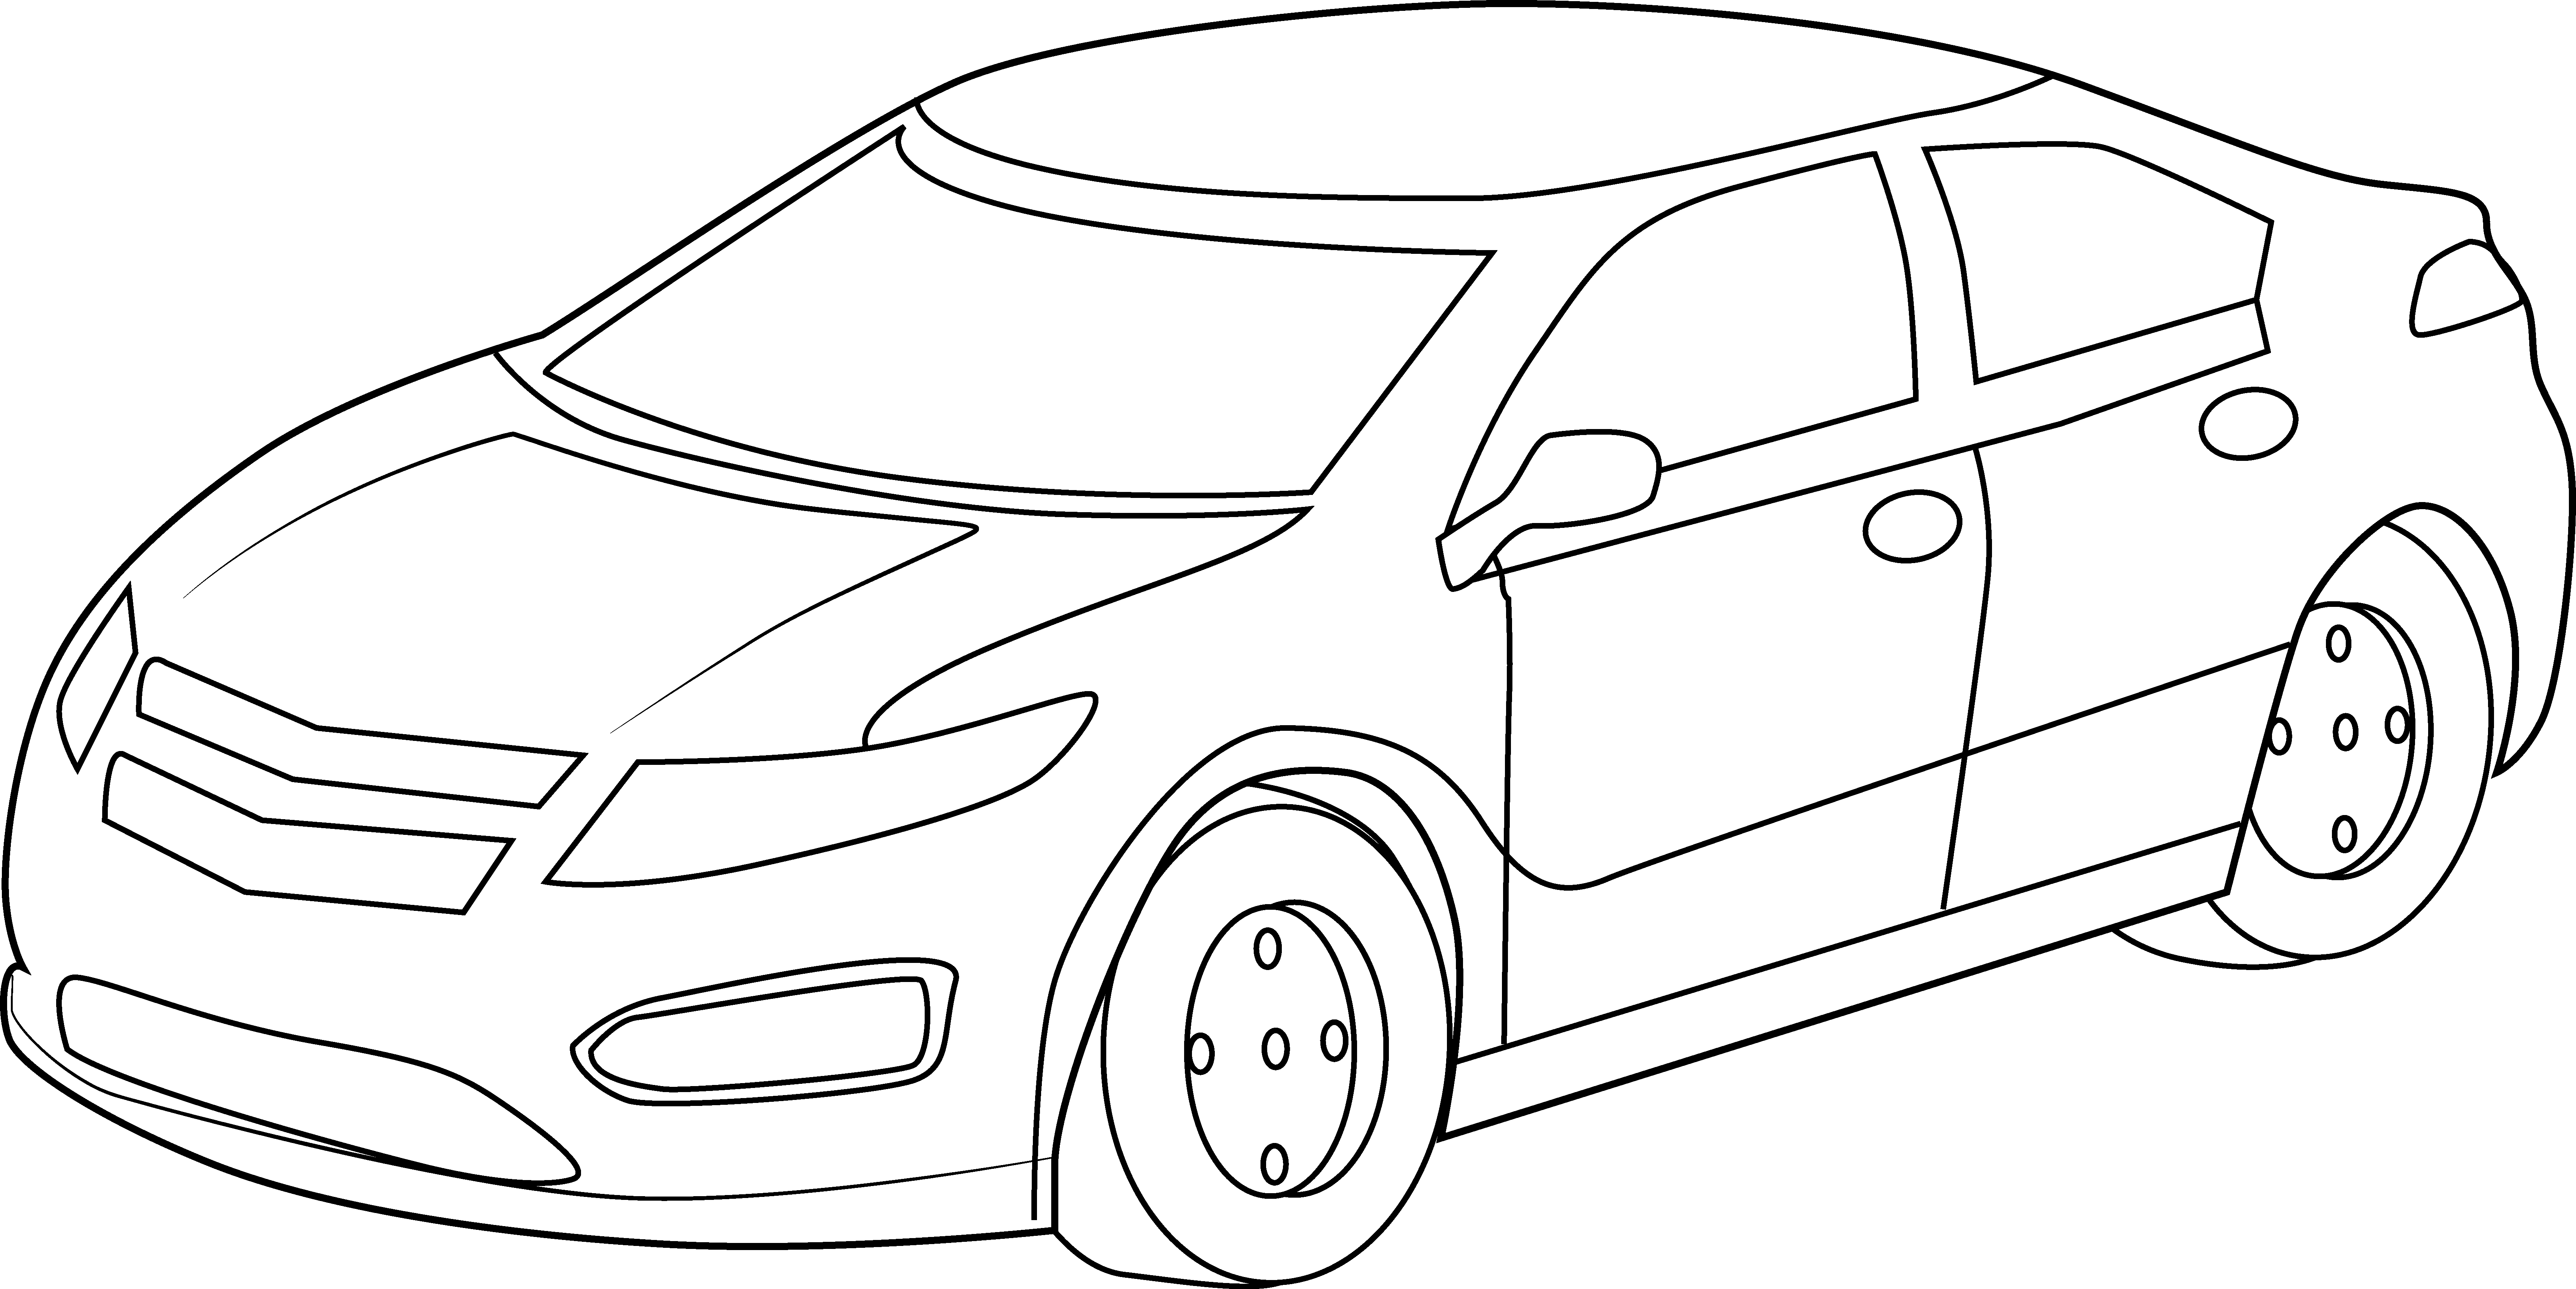 White car clipart top image royalty free Best Car Clipart Black And White #13217 - Clipartion.com image royalty free